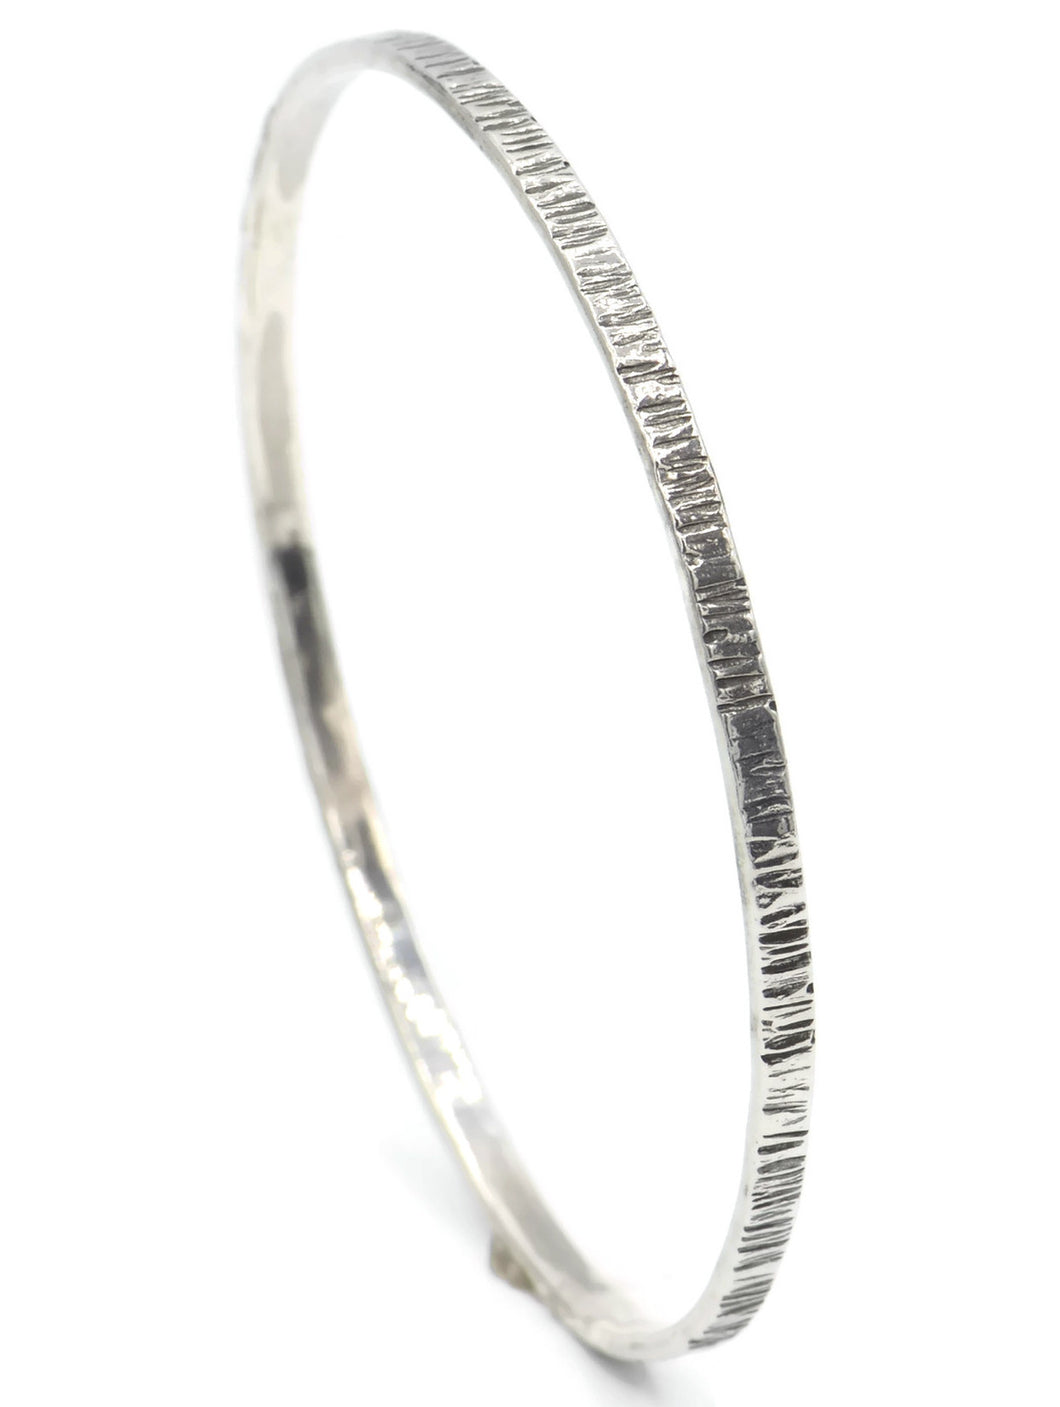 Sterling Silver Bangle With Stripes